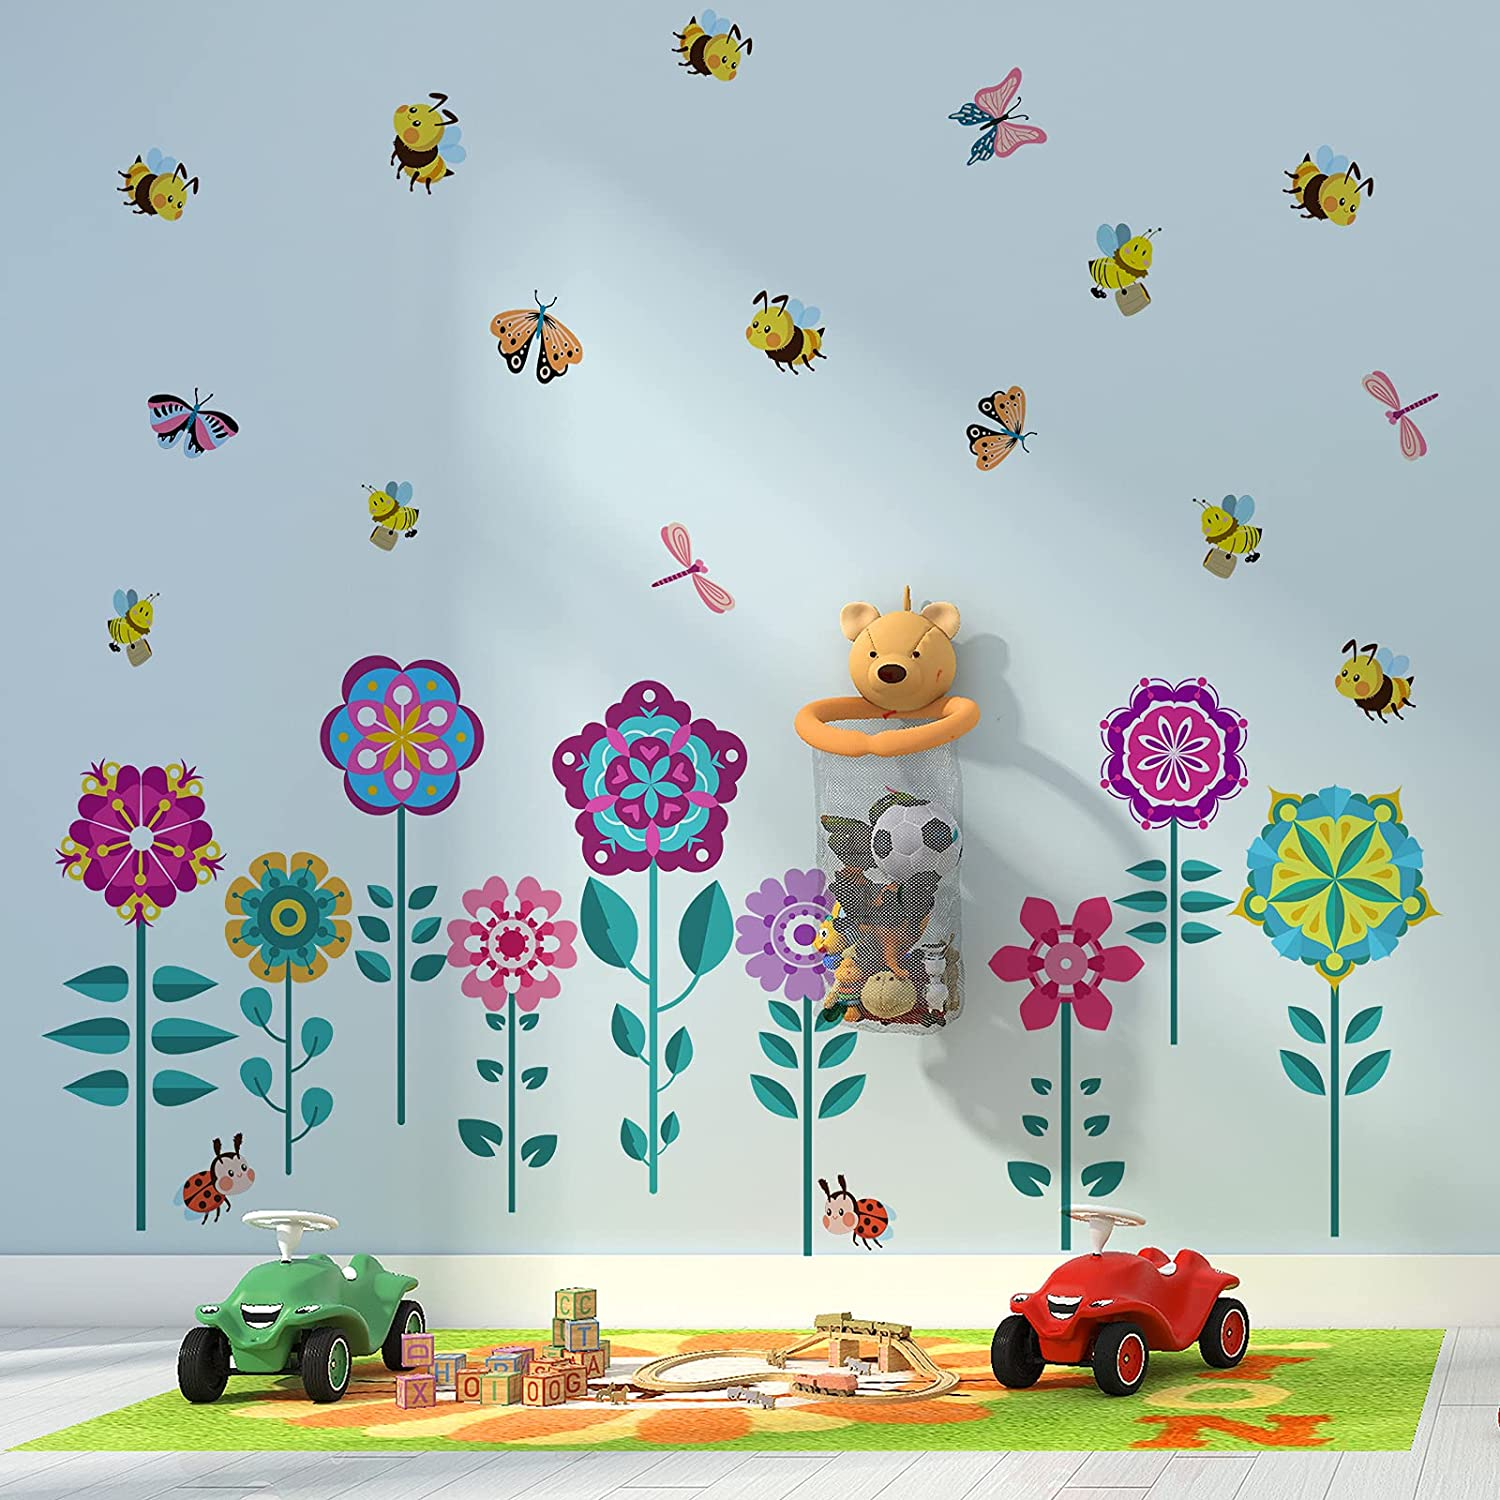 Spring Garden Flower Wall Decals Colorful Butterfly Bee Dragonfly Wall Sticker Peel and Stick Floral Wall Decor for Kids Nursery Bedroom Bathroom Kitchen Classroom